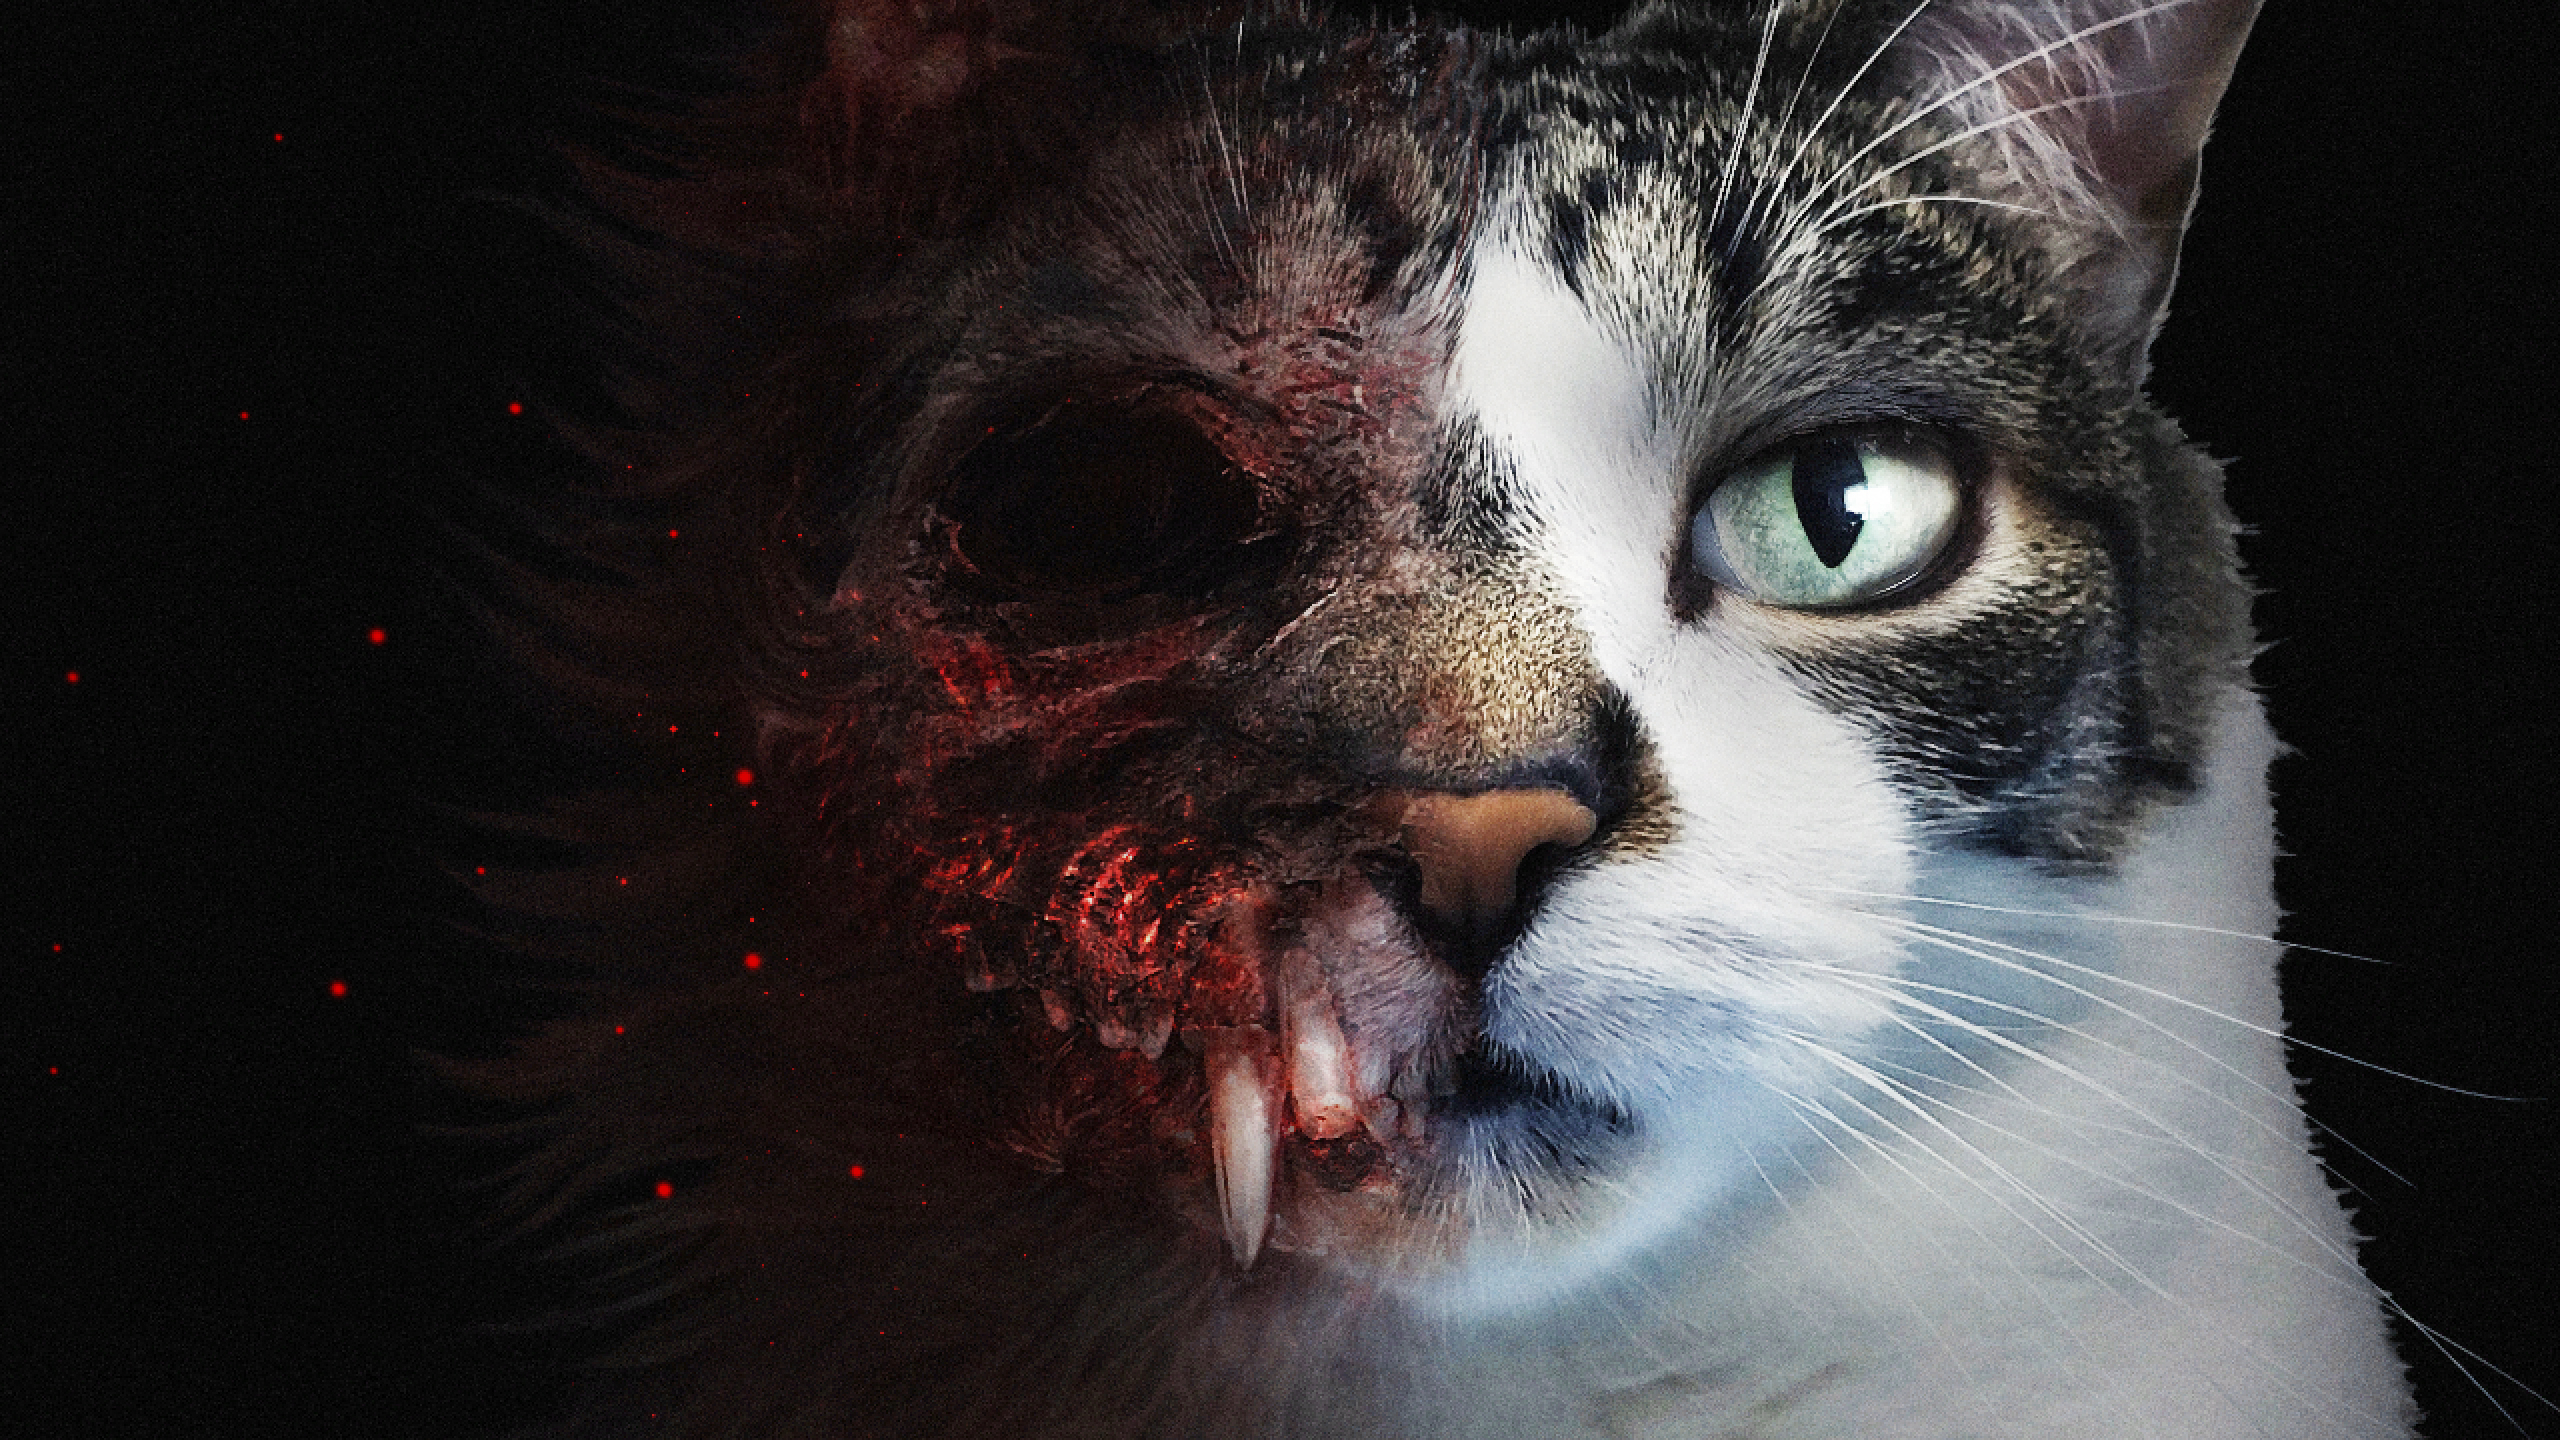 In this new horror game you are a cat, and your name is Biscuit